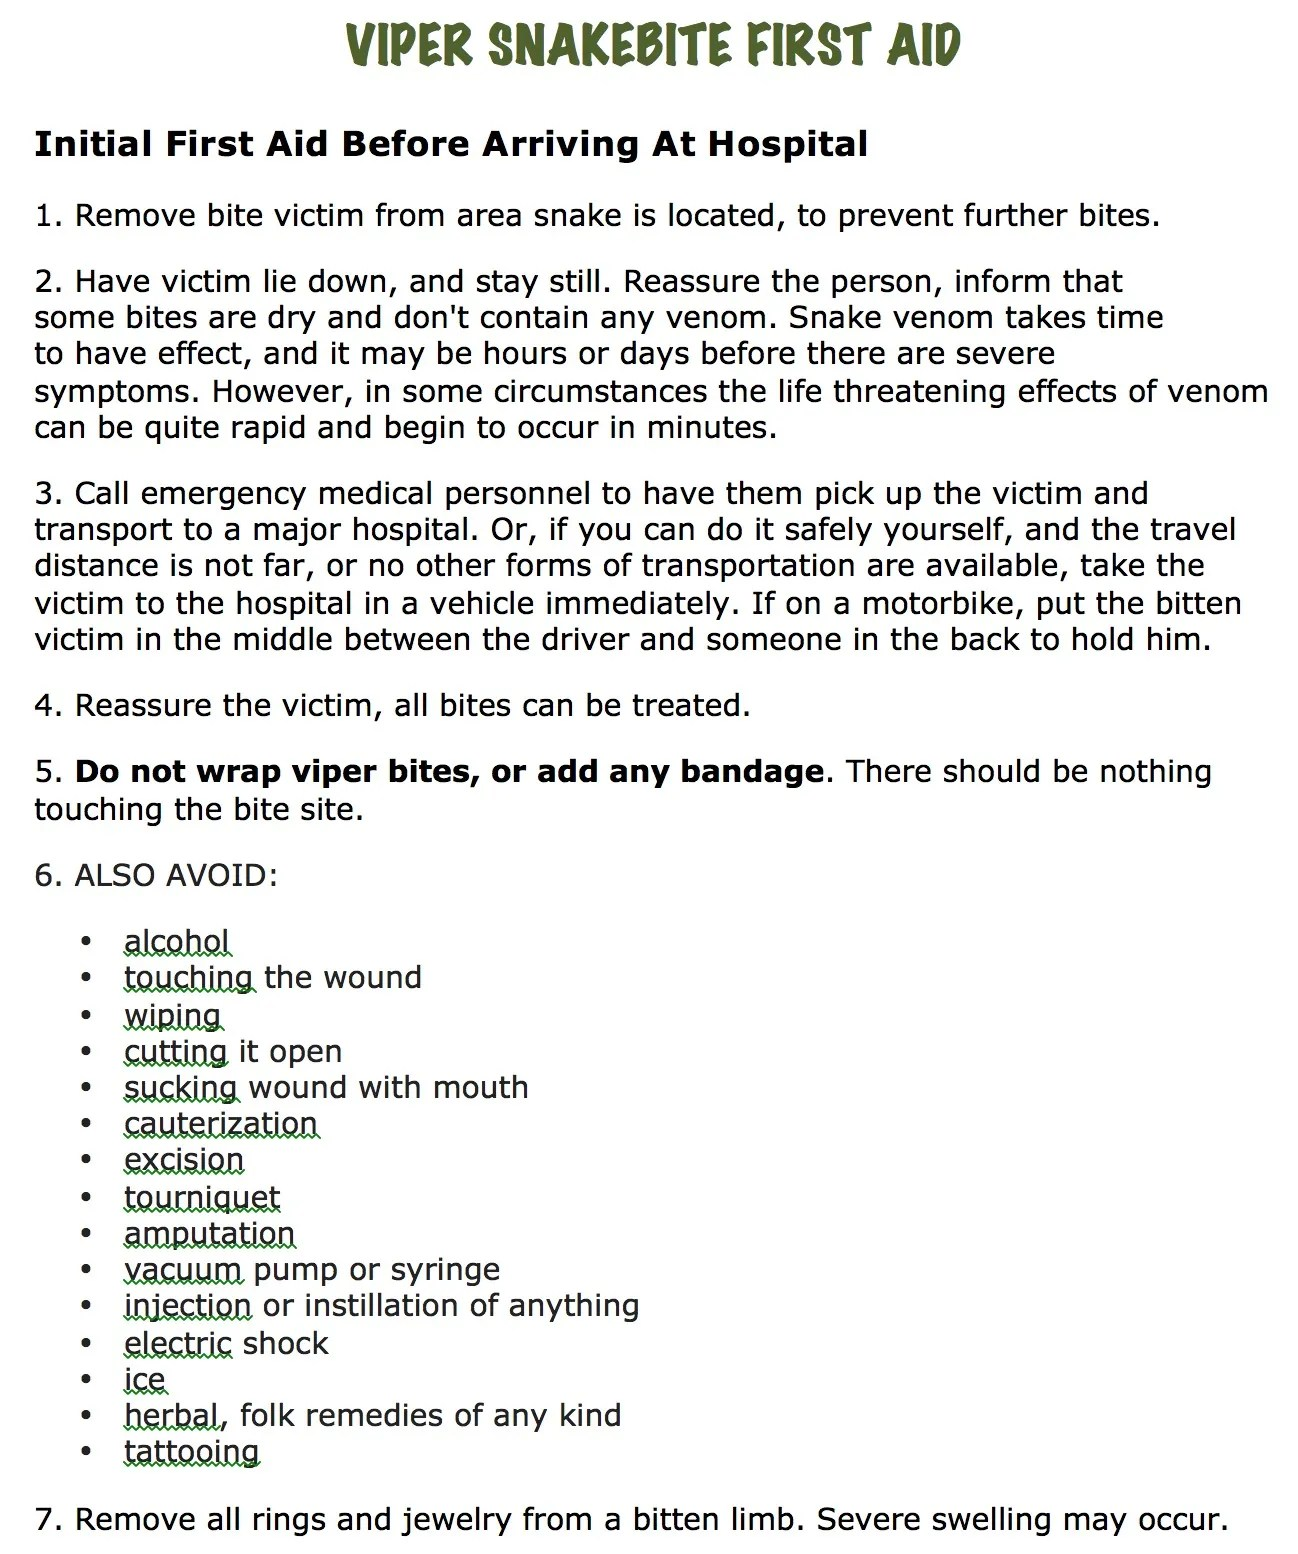 Initial First Aid Instructions For Pit Viper Snakebite In